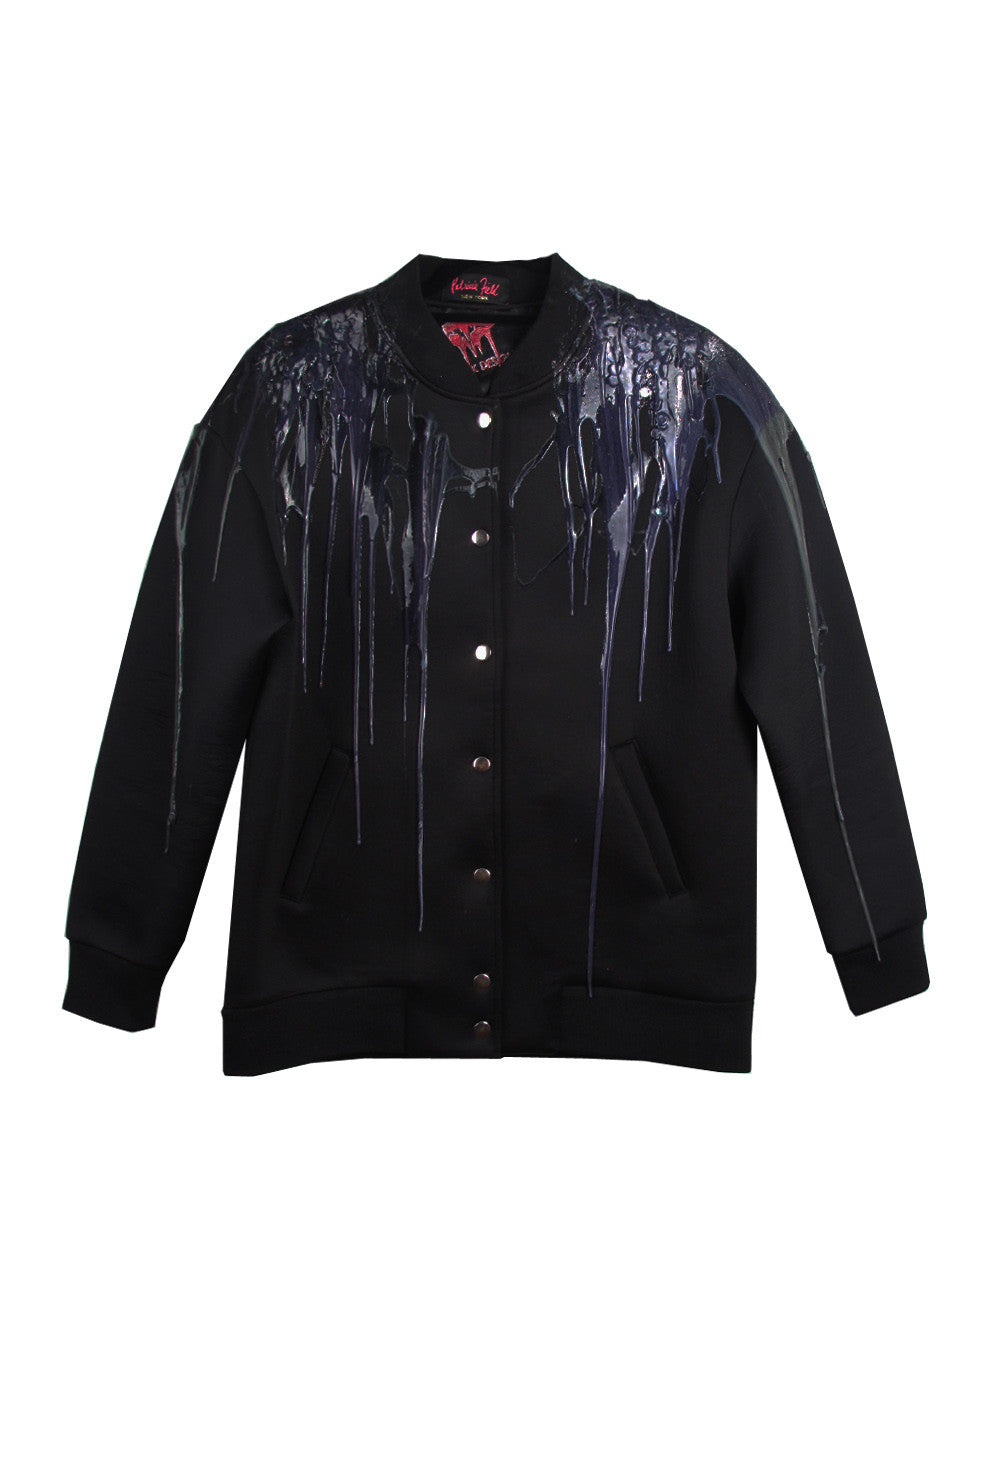 SSIK ONE OF A KIND Silicon Swirl Drip Snap Bomber - AVAILABLE FOR  IMMEDIATE DELIVERY MENS SIZE S/M